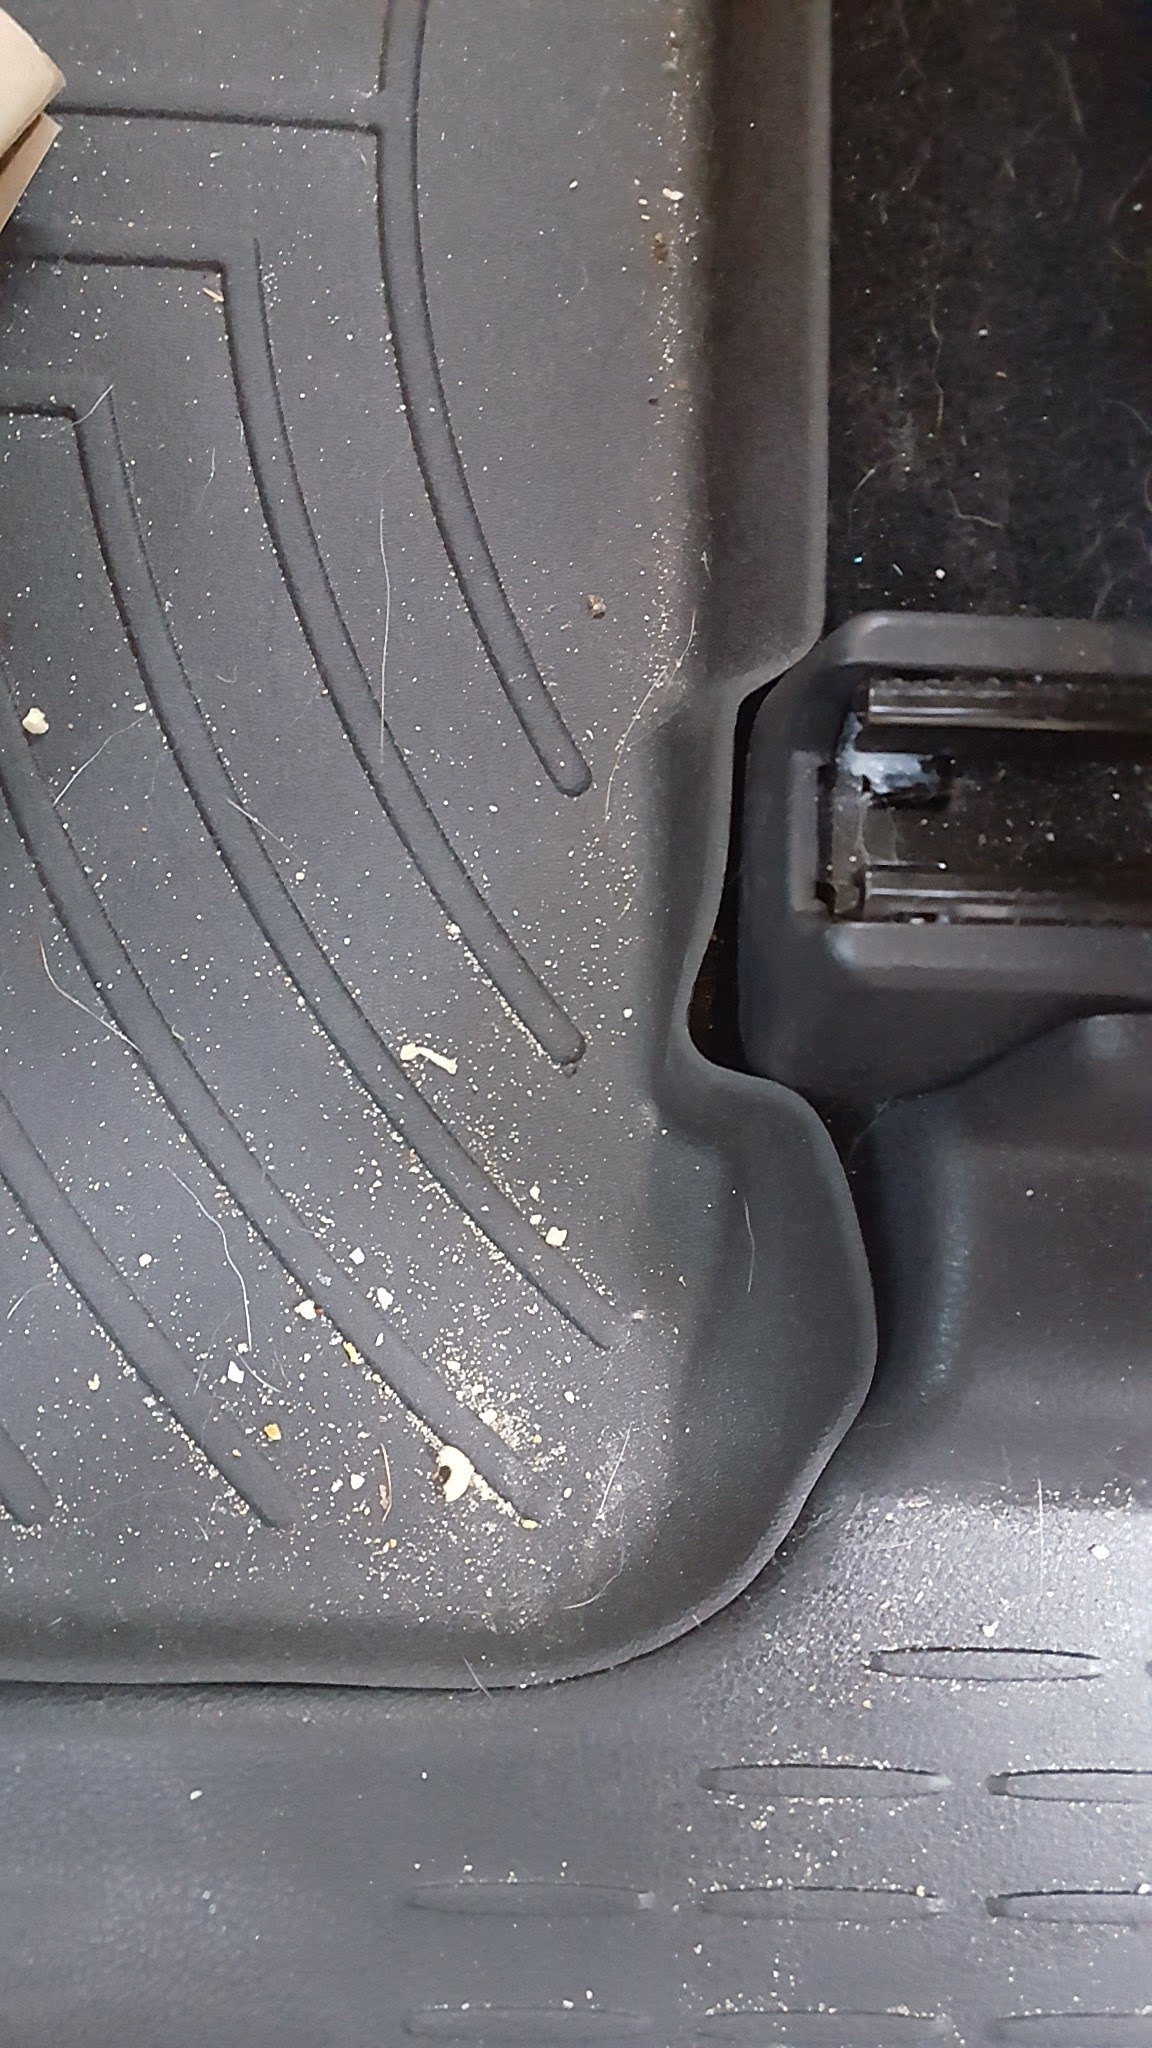 Weathertech mats canadian tire - Click Image For Larger Version Name 20161107_161415_1489192586106 Jpg Views 99 Size 488 1